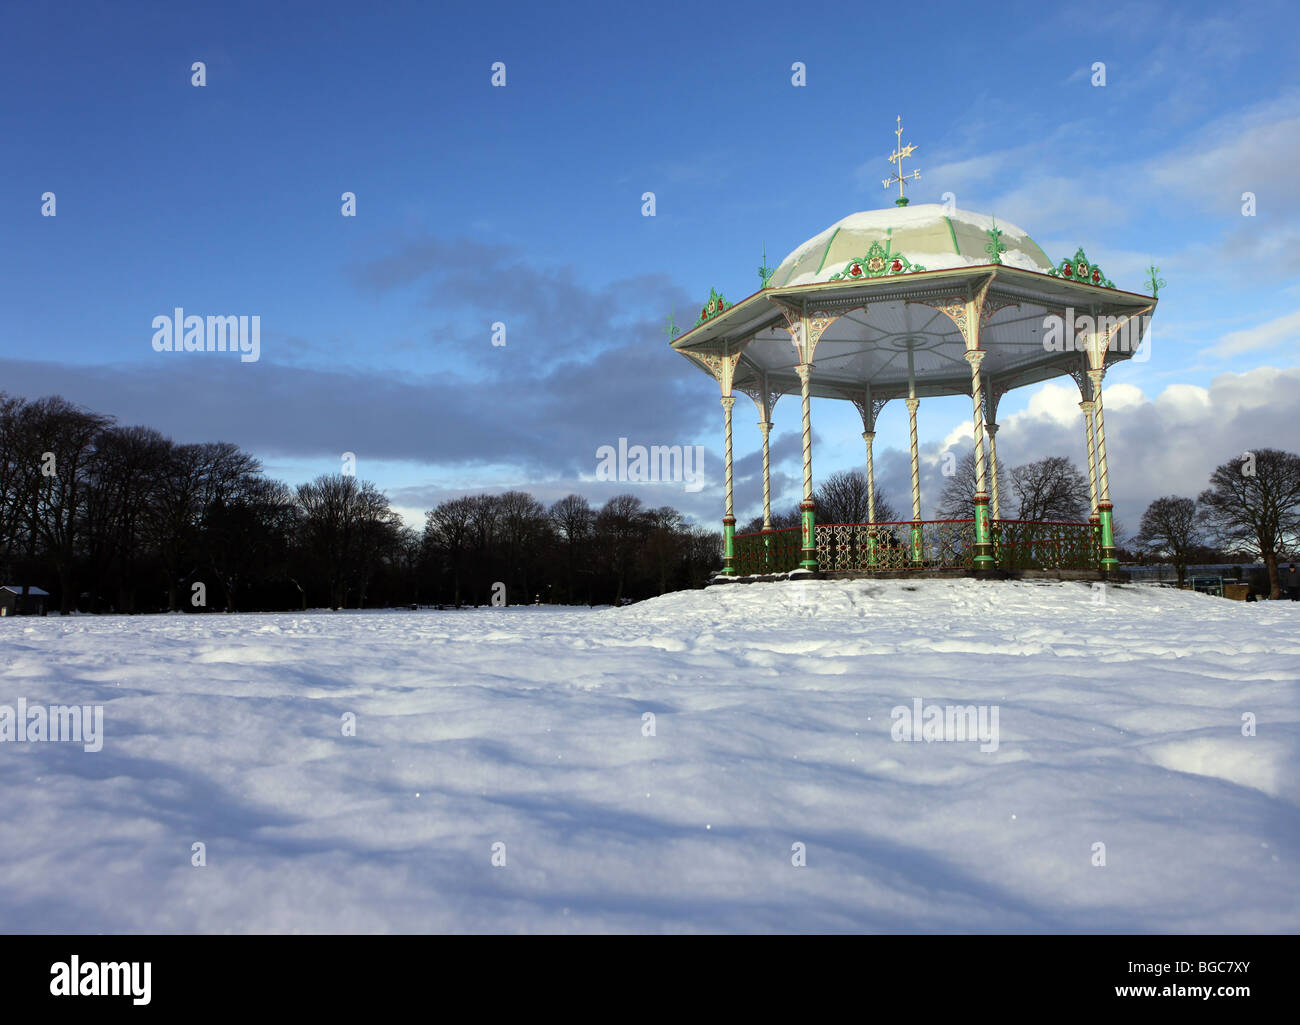 The Victorian traditional bandstand in Duthie Park in Aberdeen, Scotland, UK, seen in the snow in winter Stock Photo